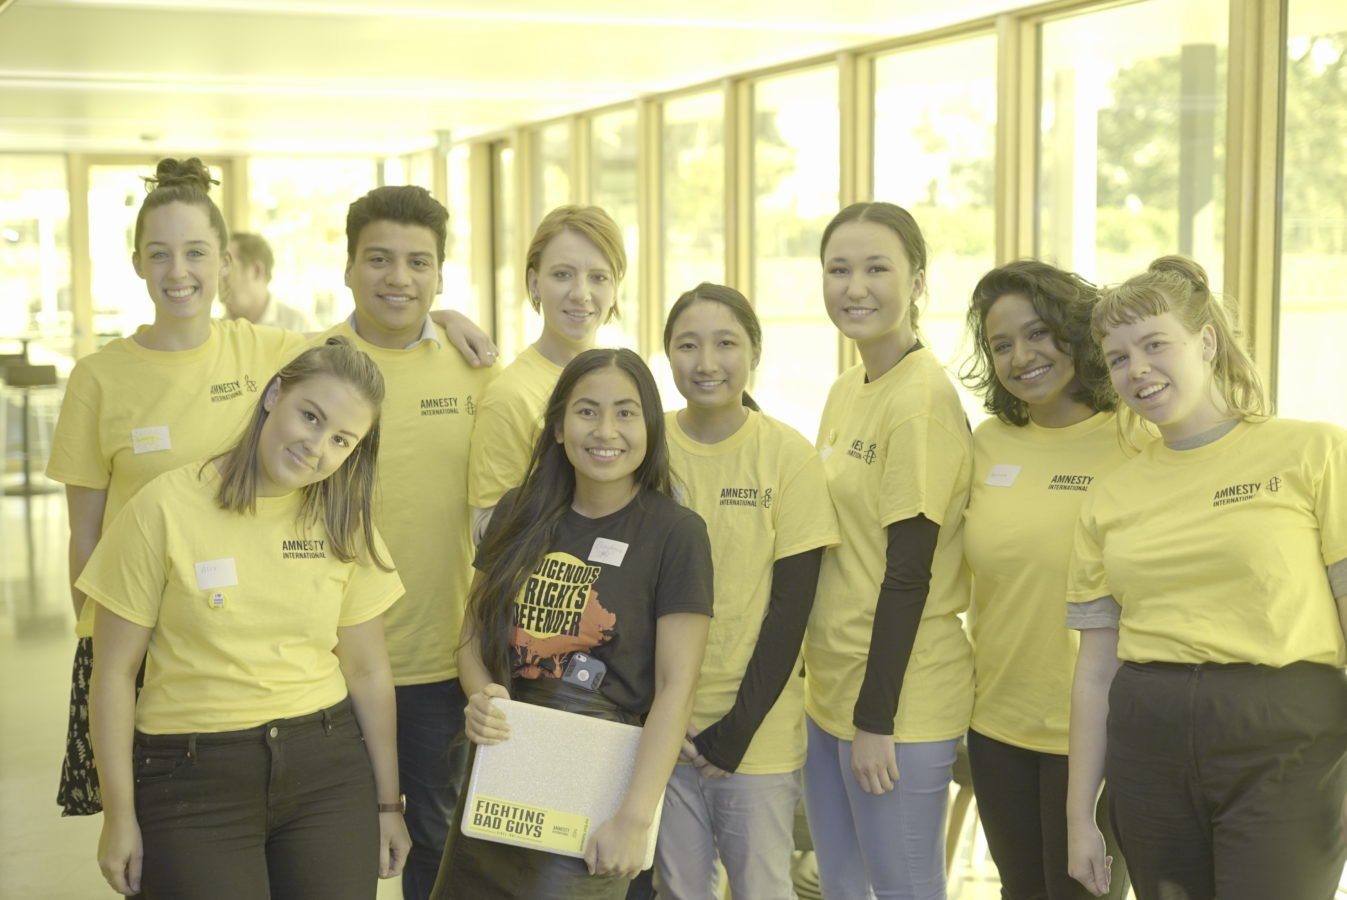 A group of volunteers wearing Amnesty yellow volunteer Tshirts & on in a black Indigenous Rights Tshirt are posed for the photo